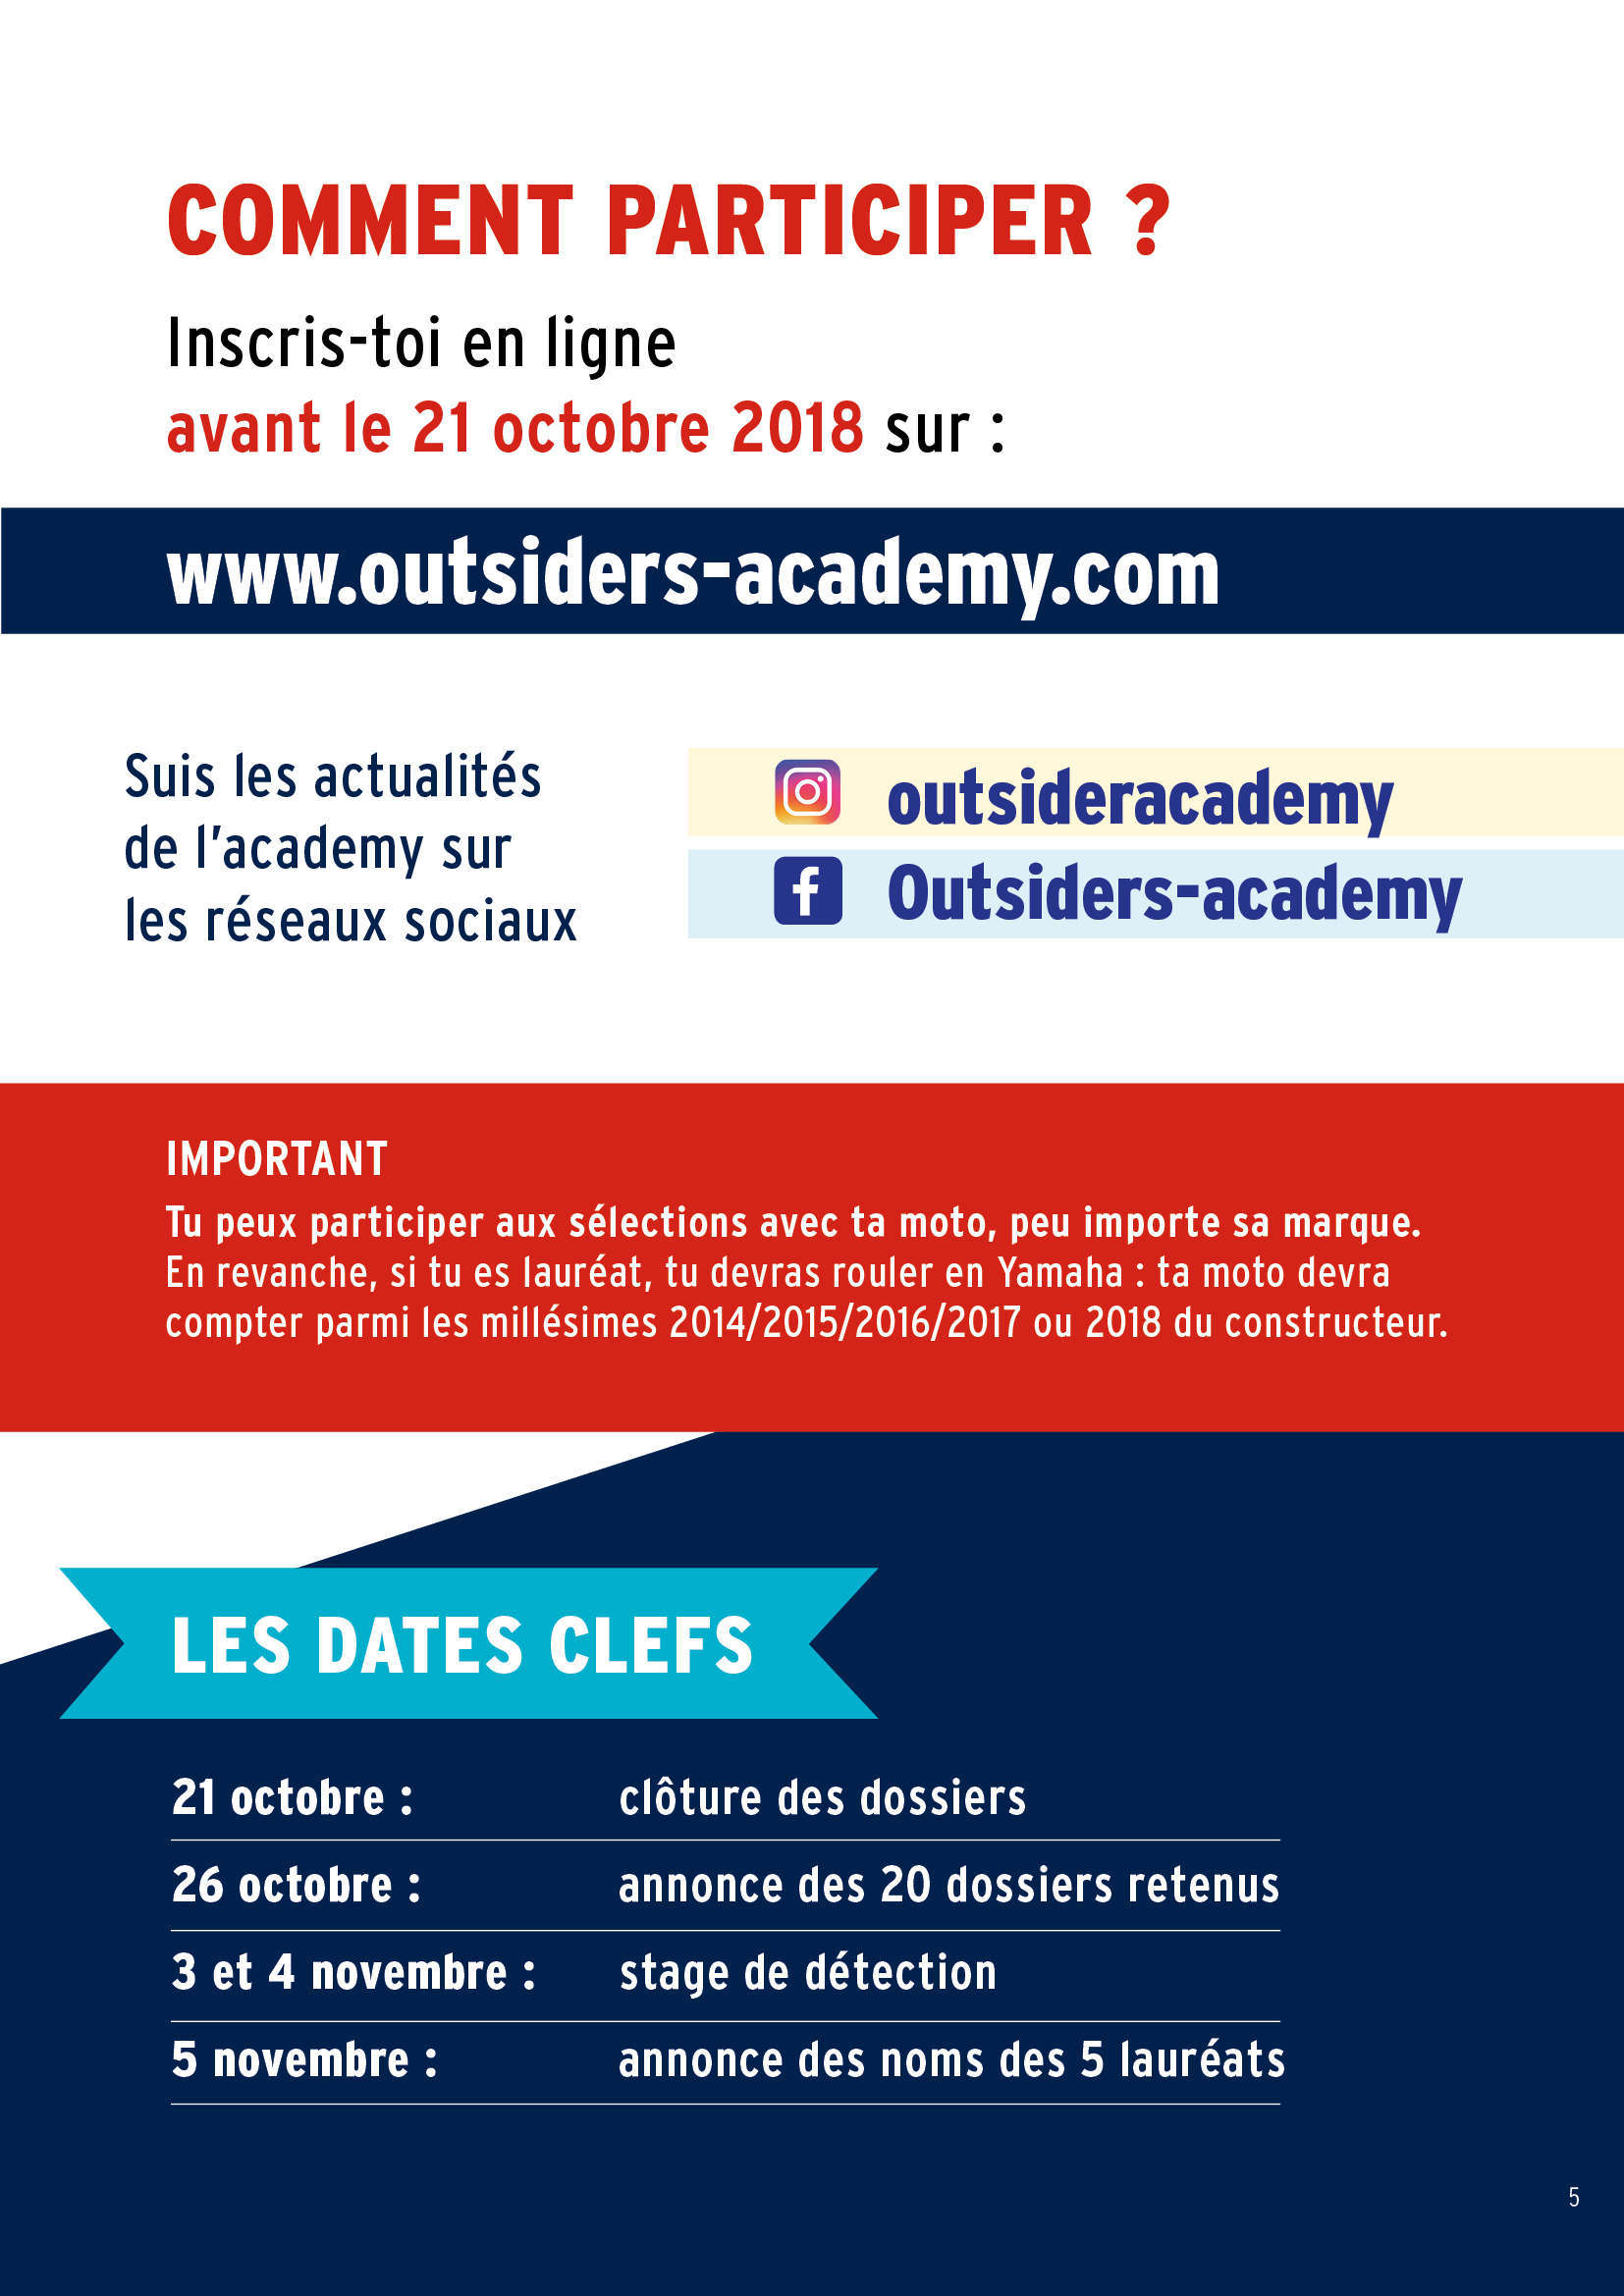 DP-OUTSIDERS_ACADEMY-20195